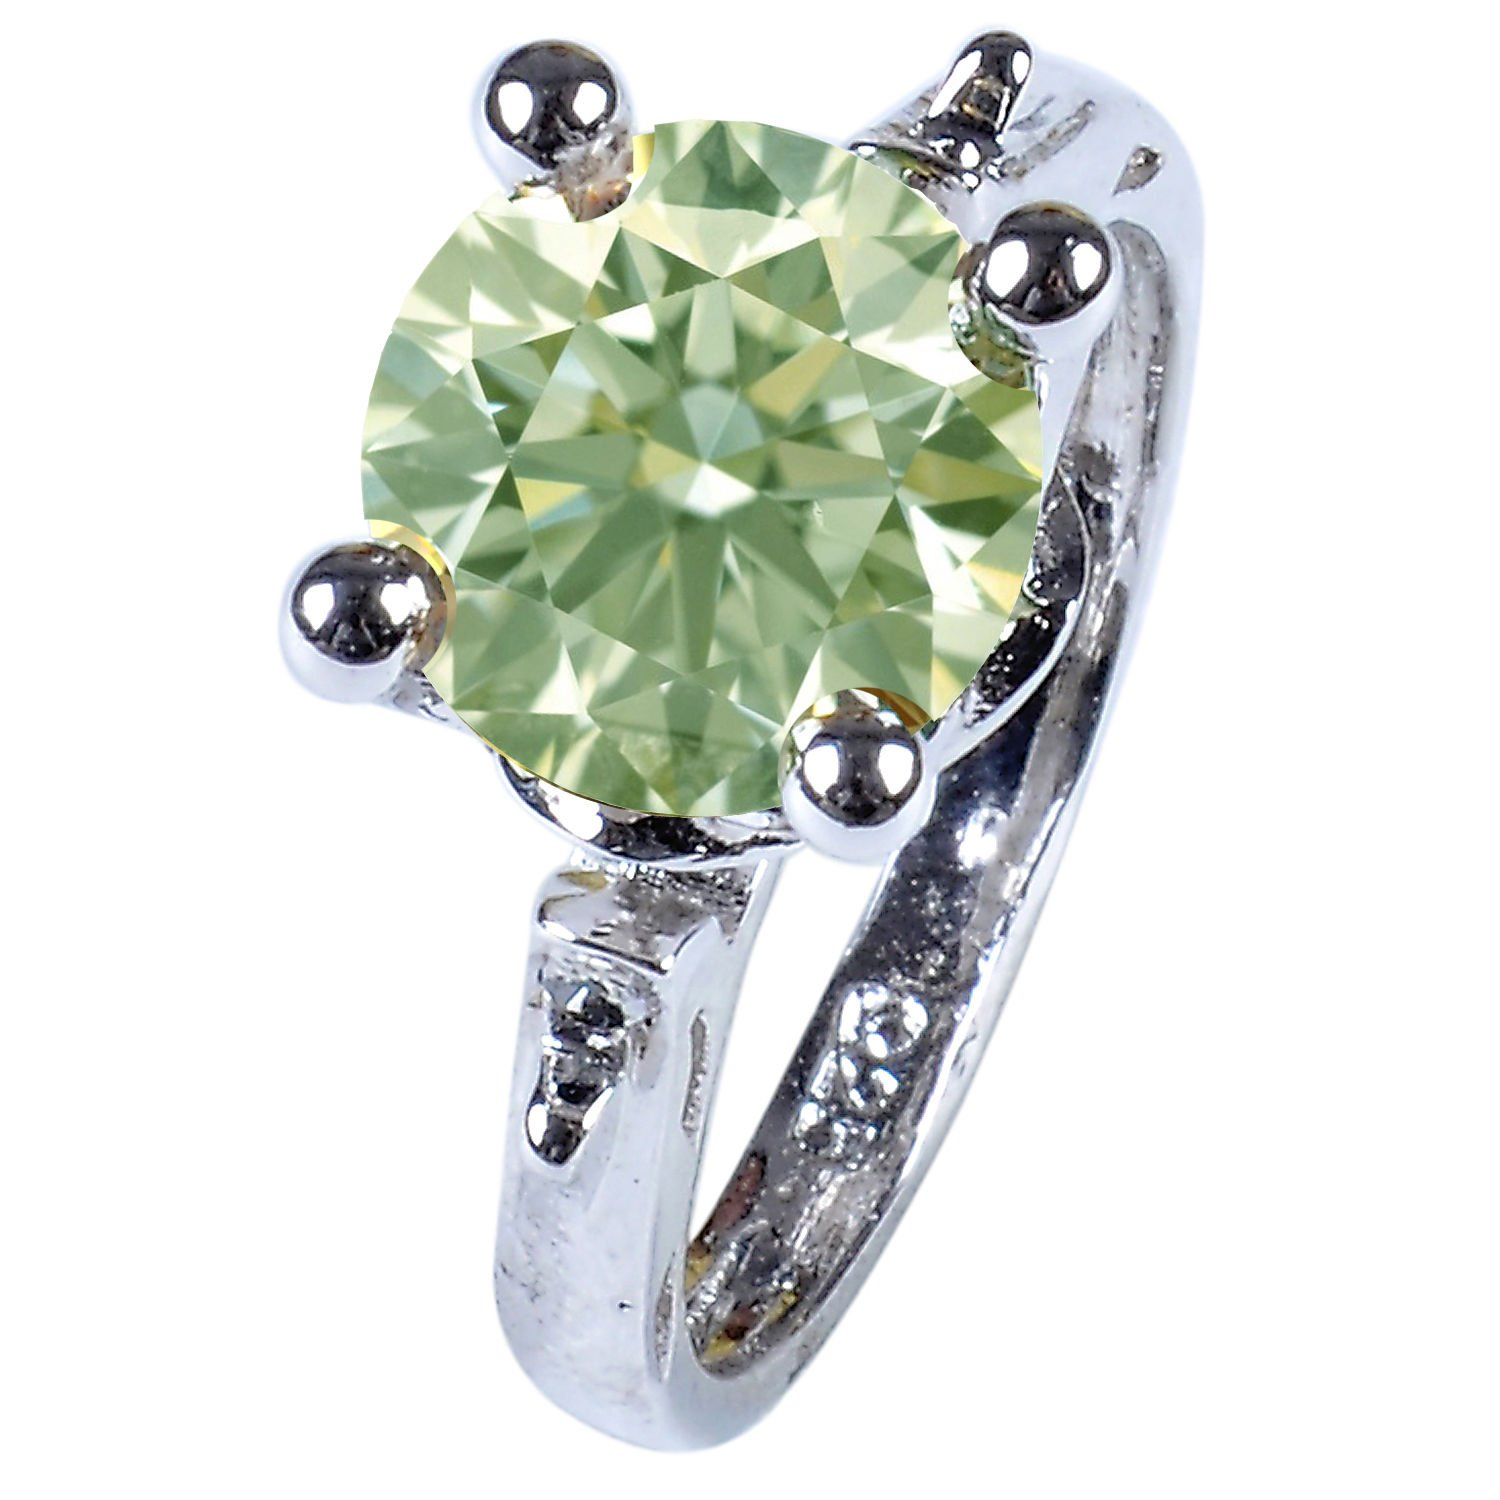 RINGJEWEL 2.78 ct VS1 Round Silver Plated Moissanite Engagement Ring Off White Light Green Color Size 7 by RINGJEWEL